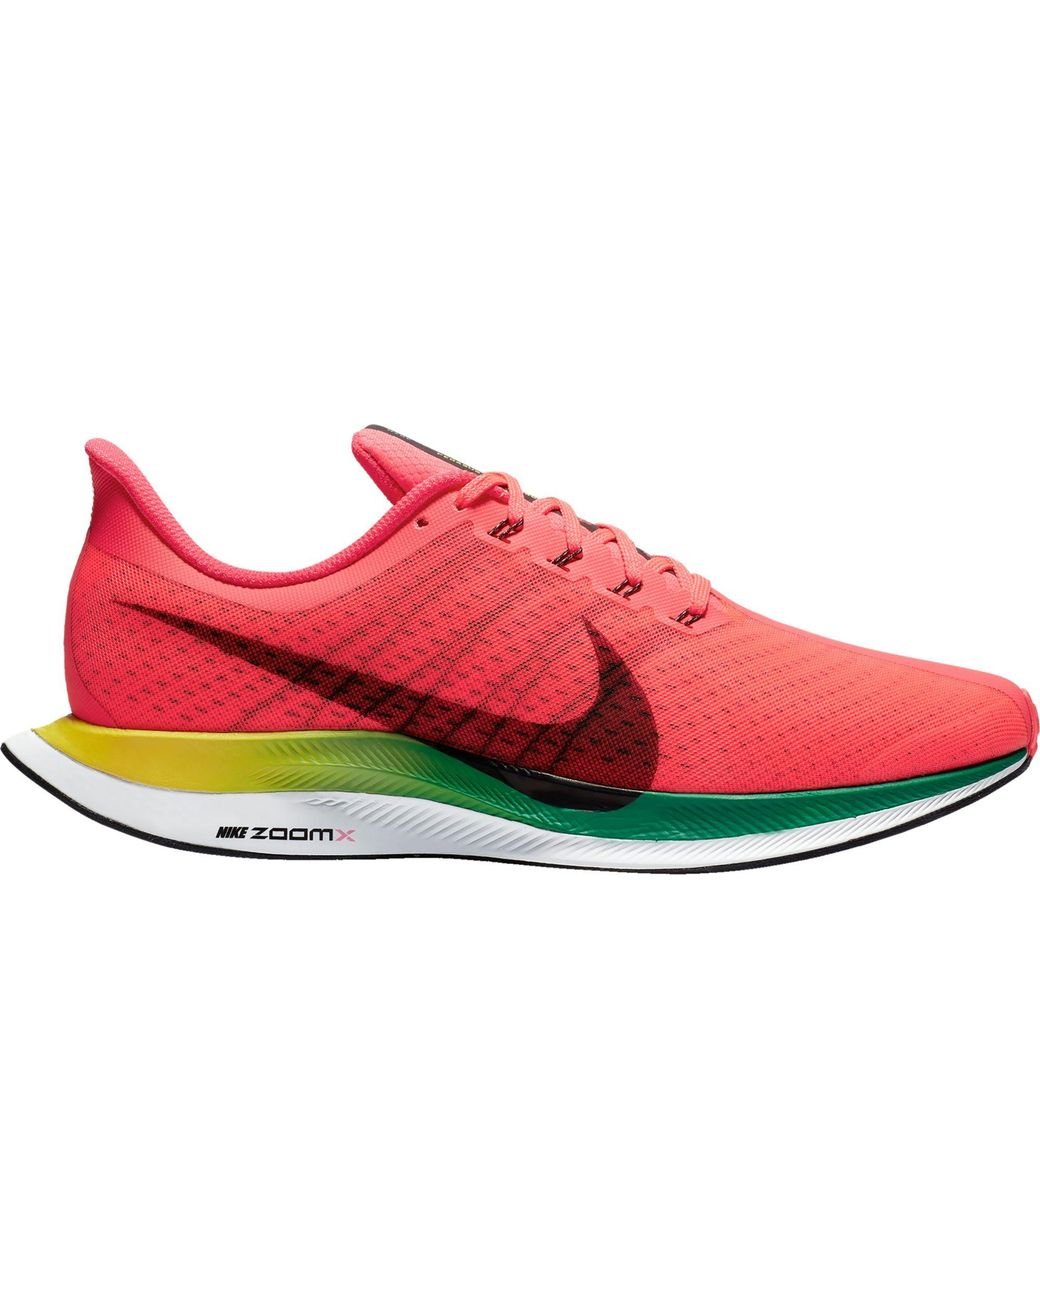 009f9e489e2b Lyst - Nike Air Zoom Pegasus 35 Turbo Running Shoes in Red for Men